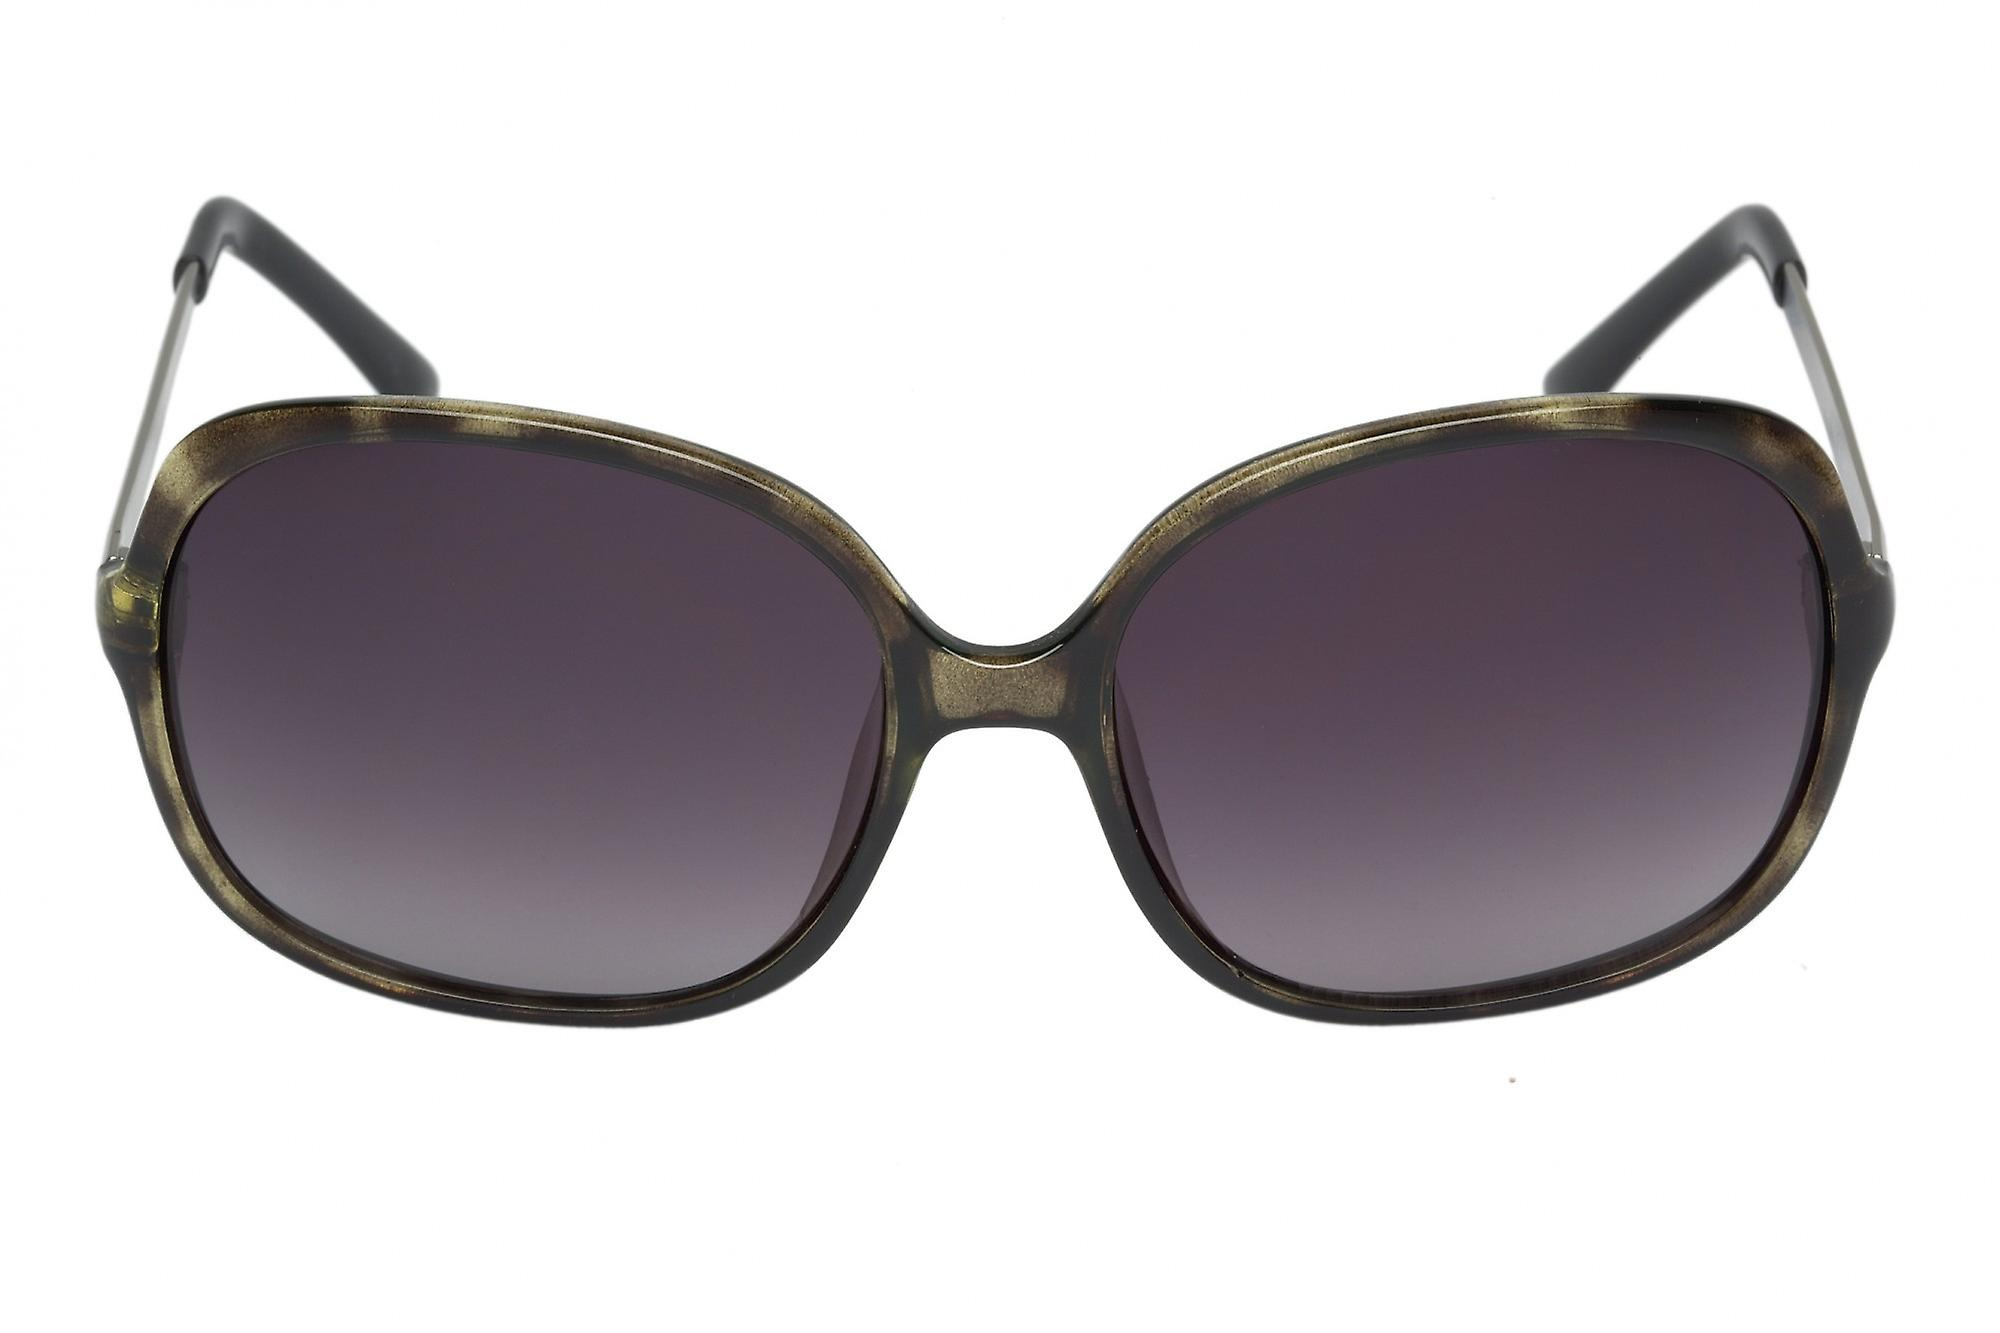 Elegant sunglasses for women by Burgmeister with 100% UV protection | solid polycarbonate frame, high quality sunglasses case, microfiber glasses pouch and 2 years warranty | SBM108-361 Stockholm